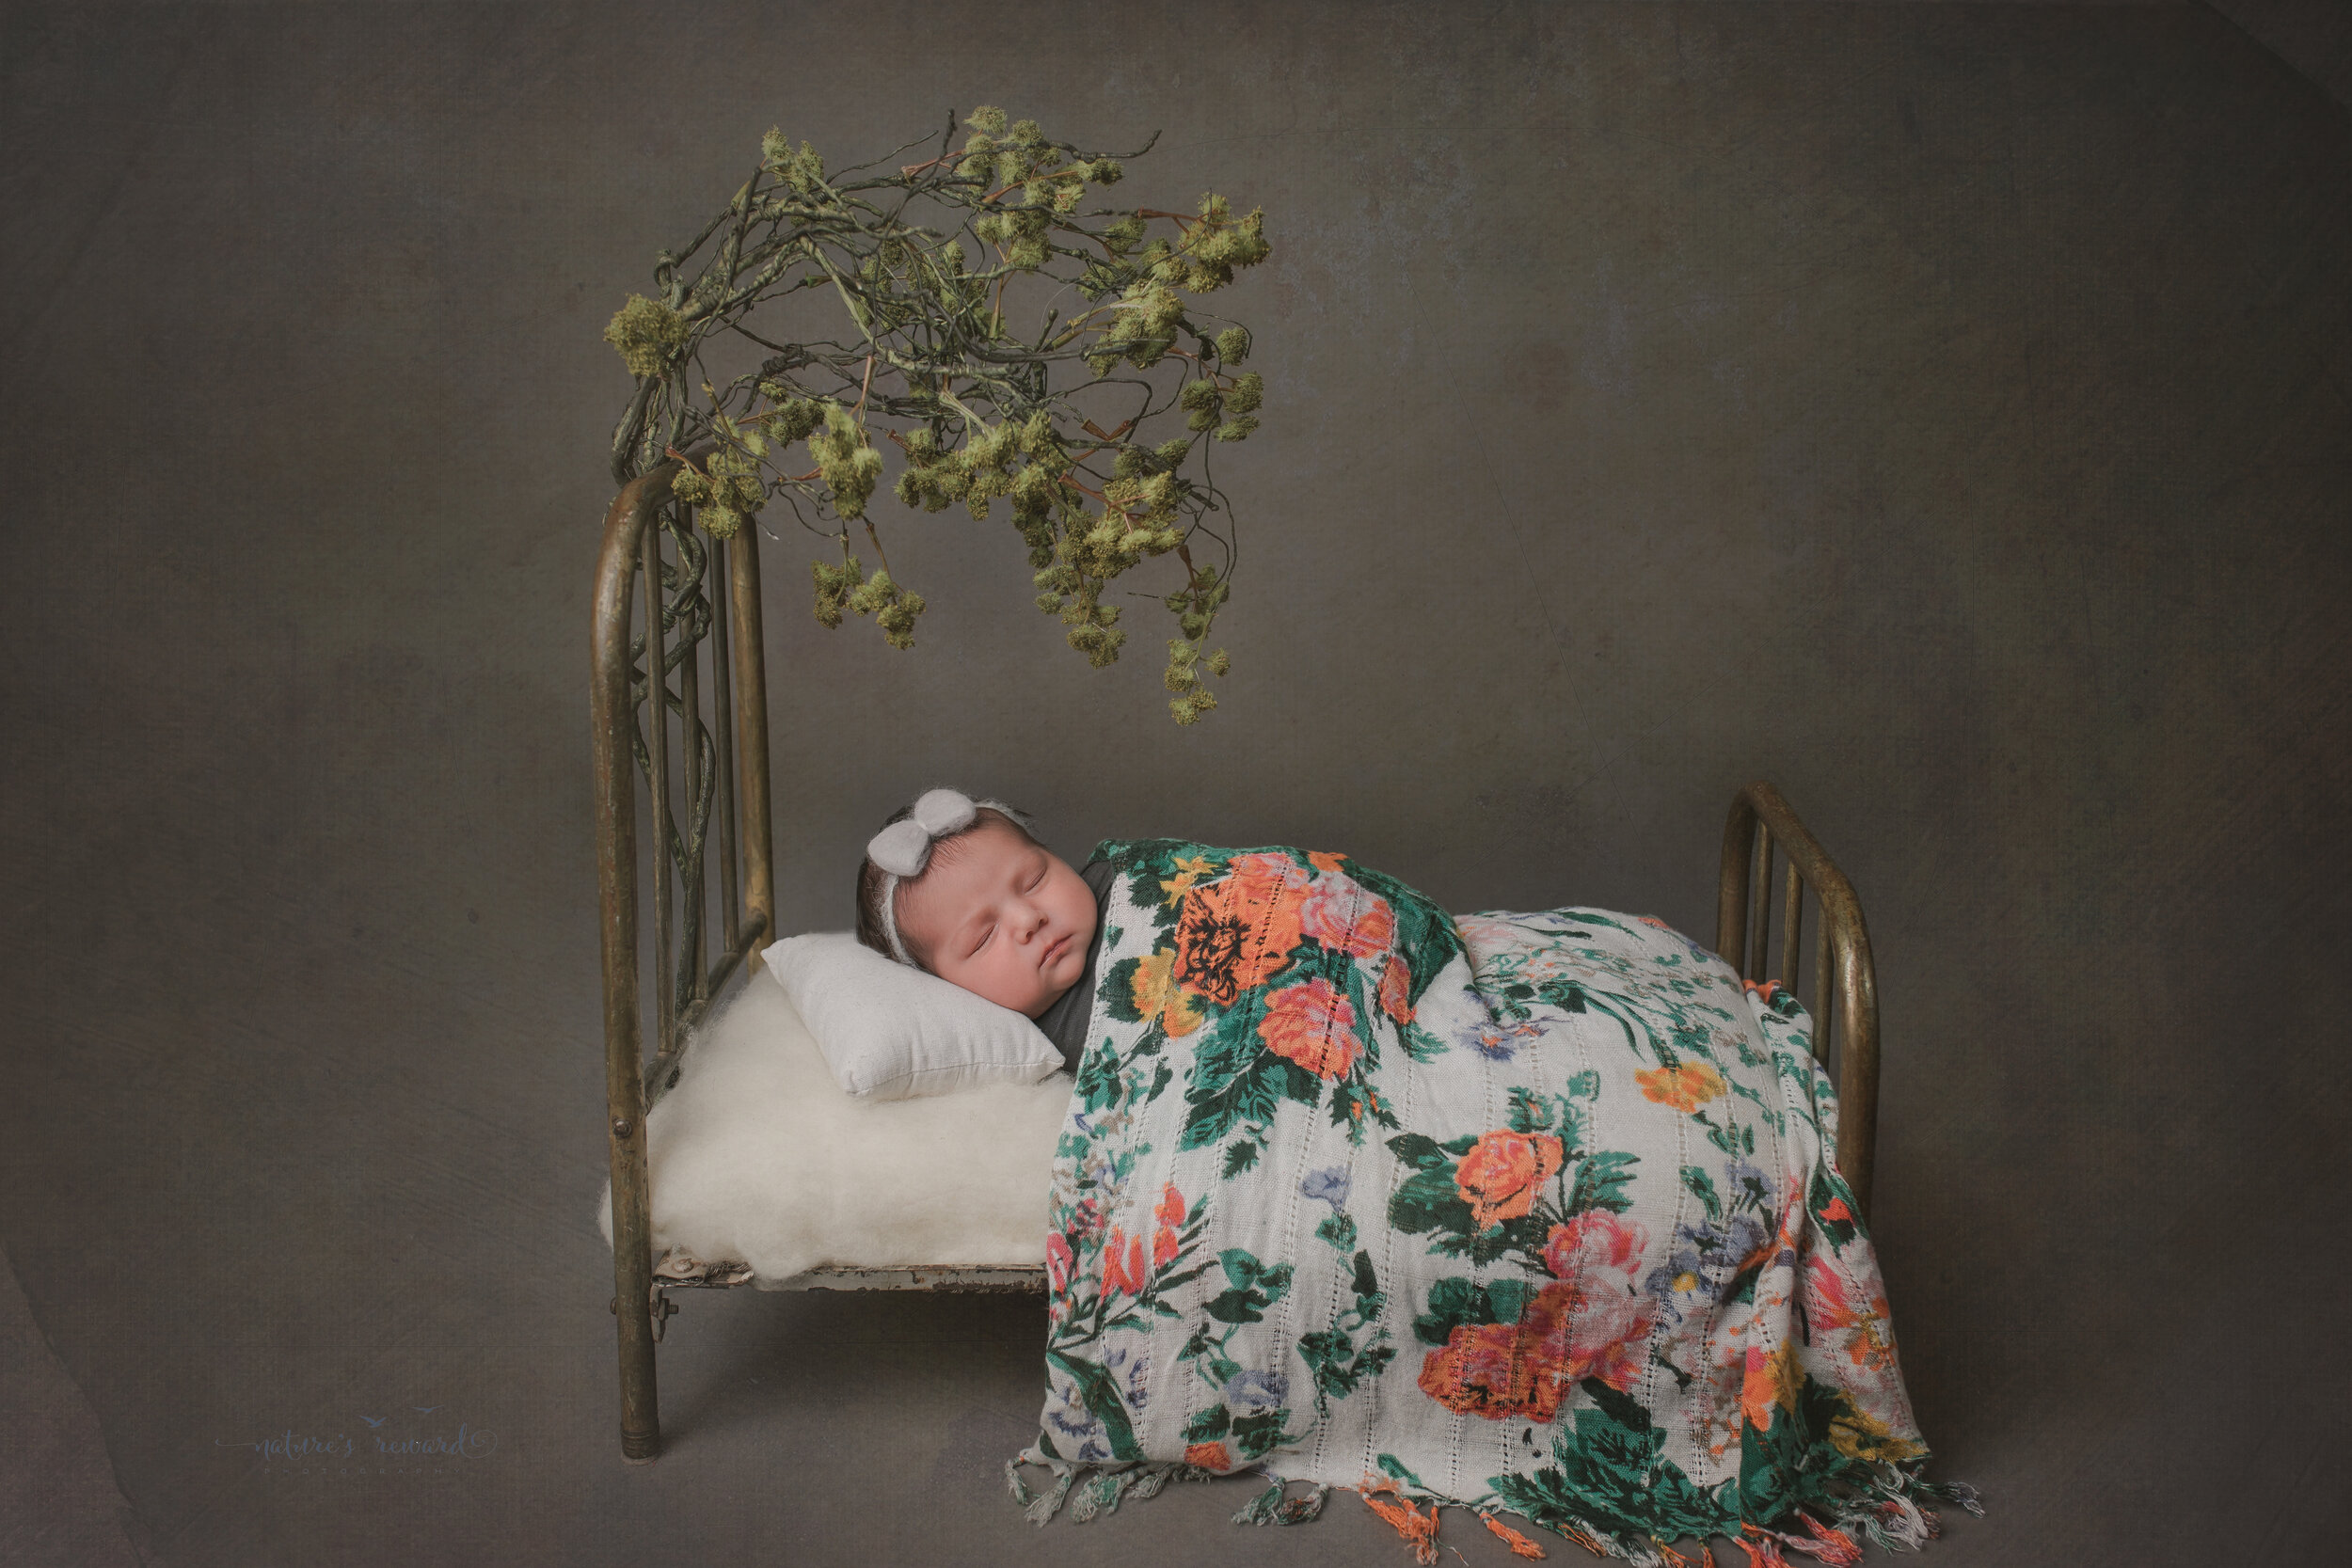 A newborn baby girl in a doll bed, in this portrait by Nature's Reward Photography